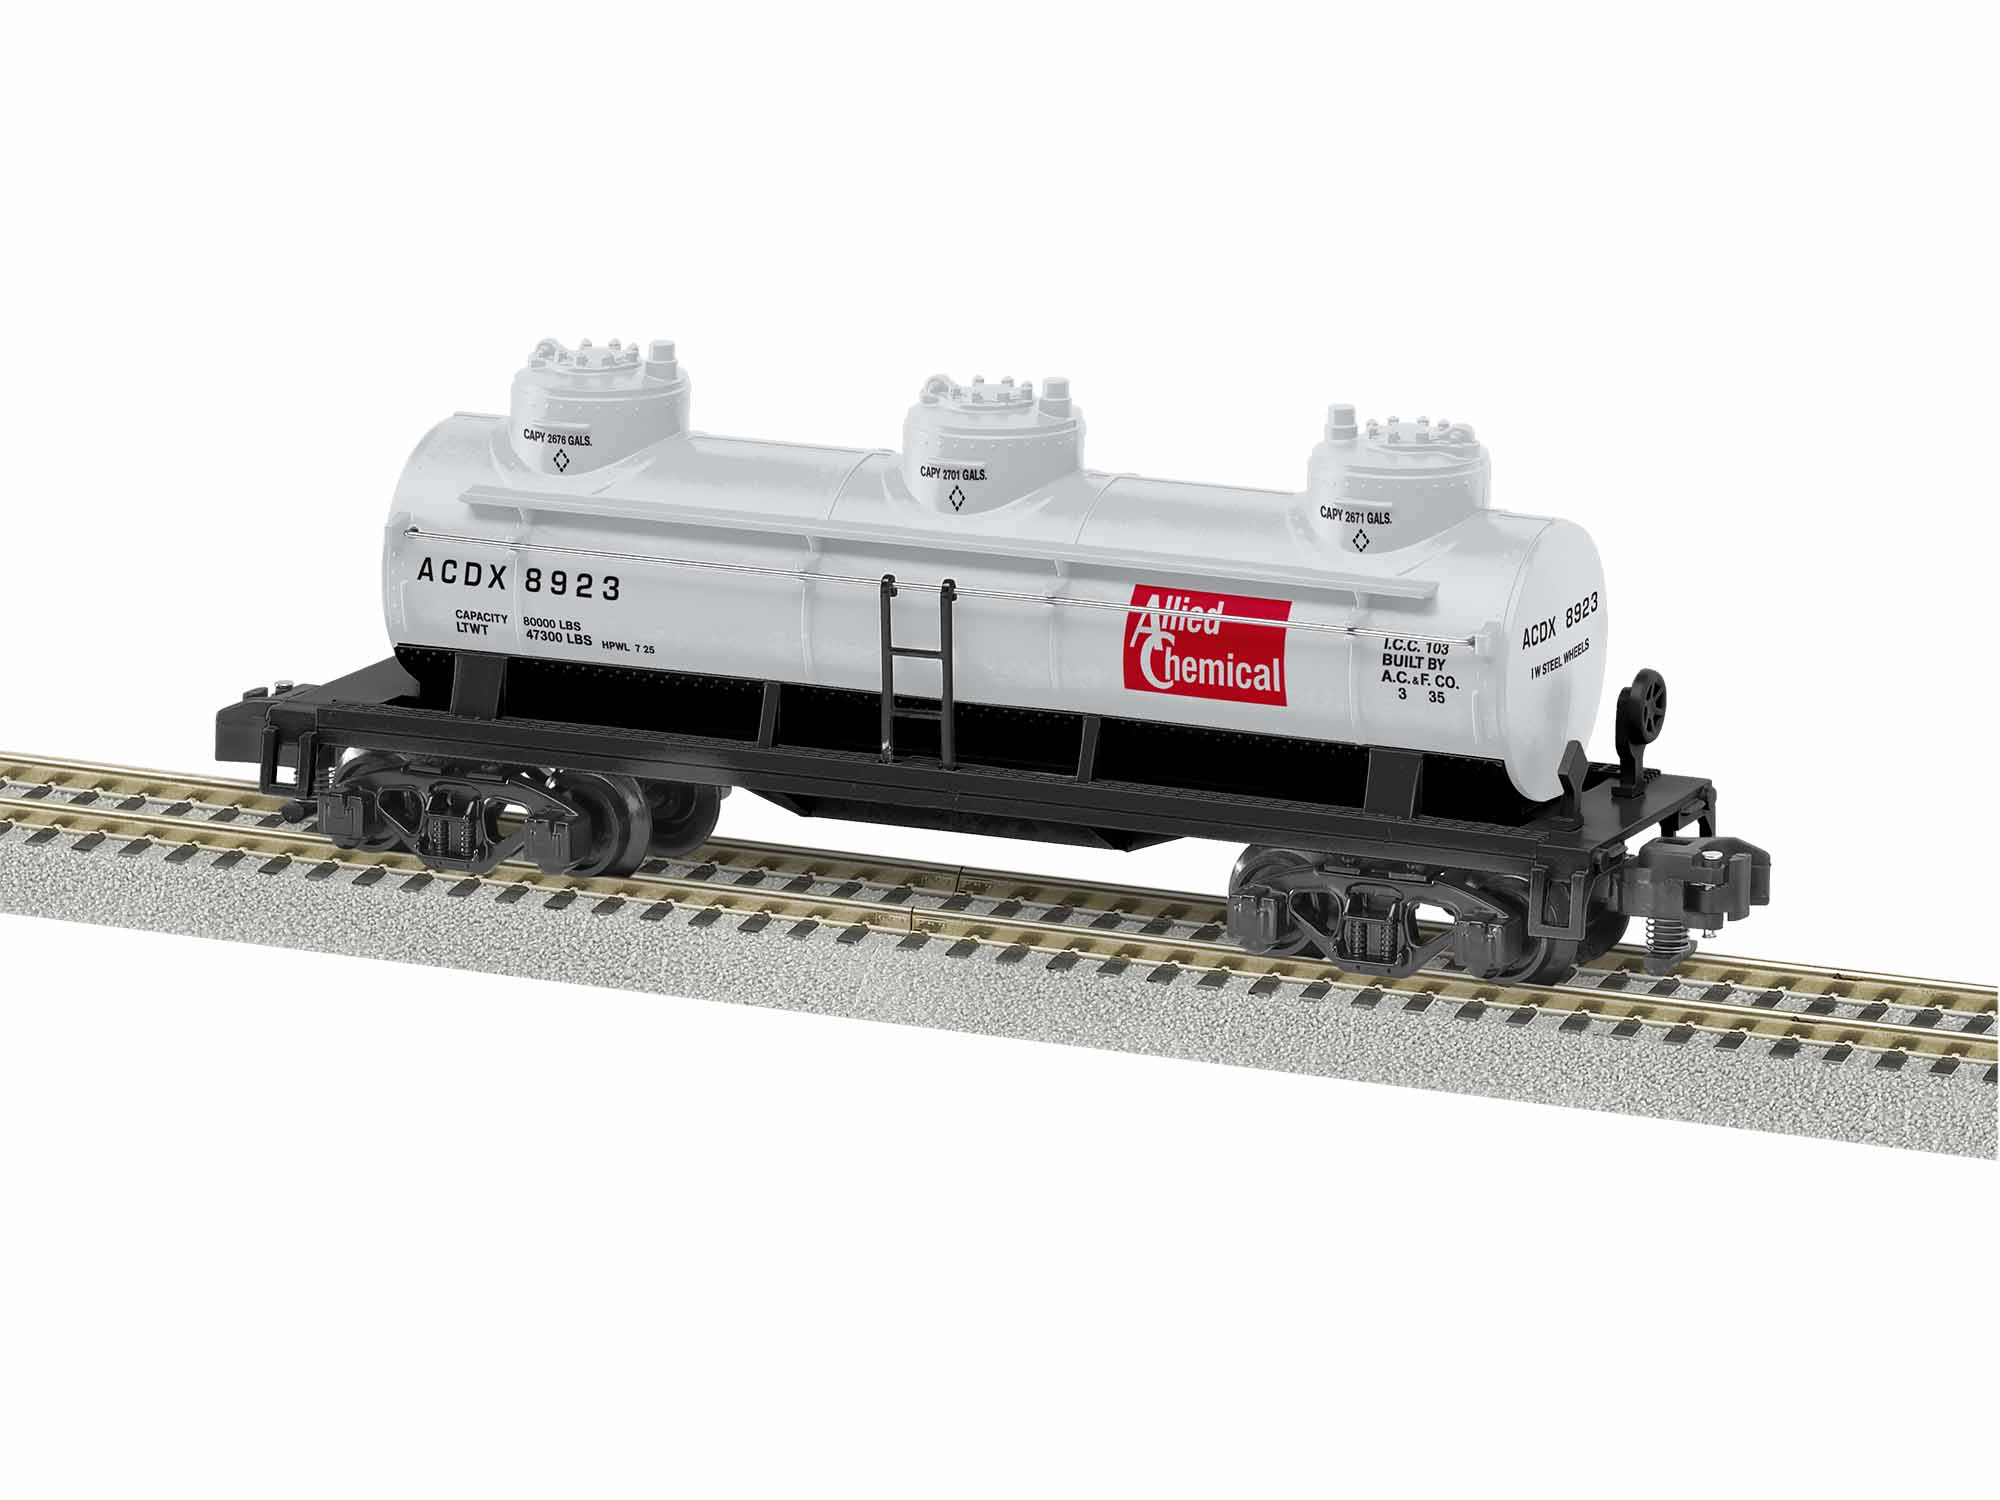 LNL1919271 Lionel S AF 3-Dome Tankcar,Allied Chemical #8923